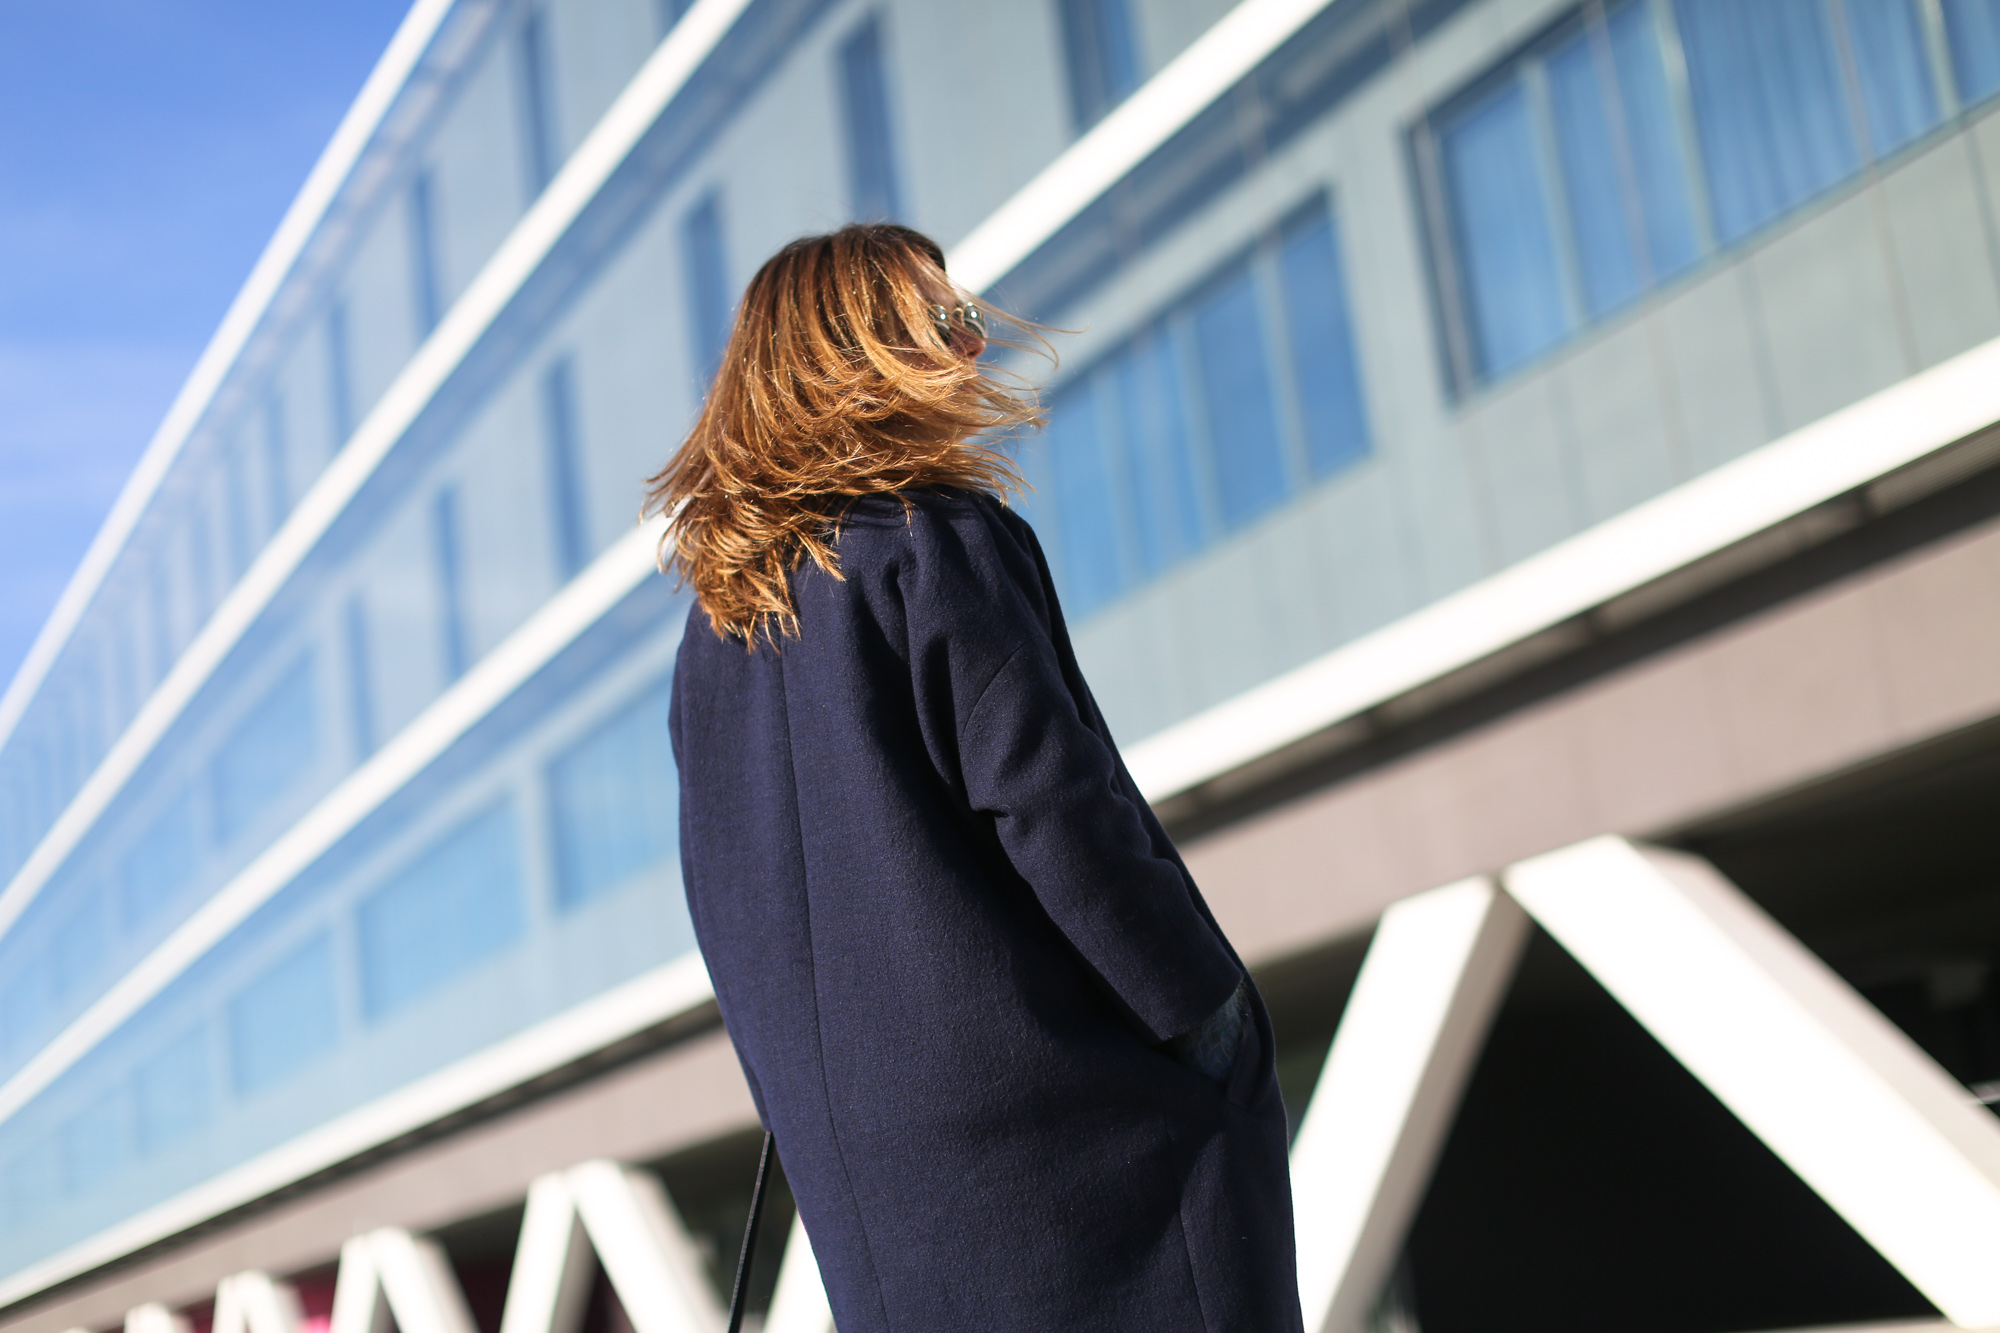 Clochet_streetstyle_masscob_navy_coat_trimmer_bilbao_acne_pop_jeans-8